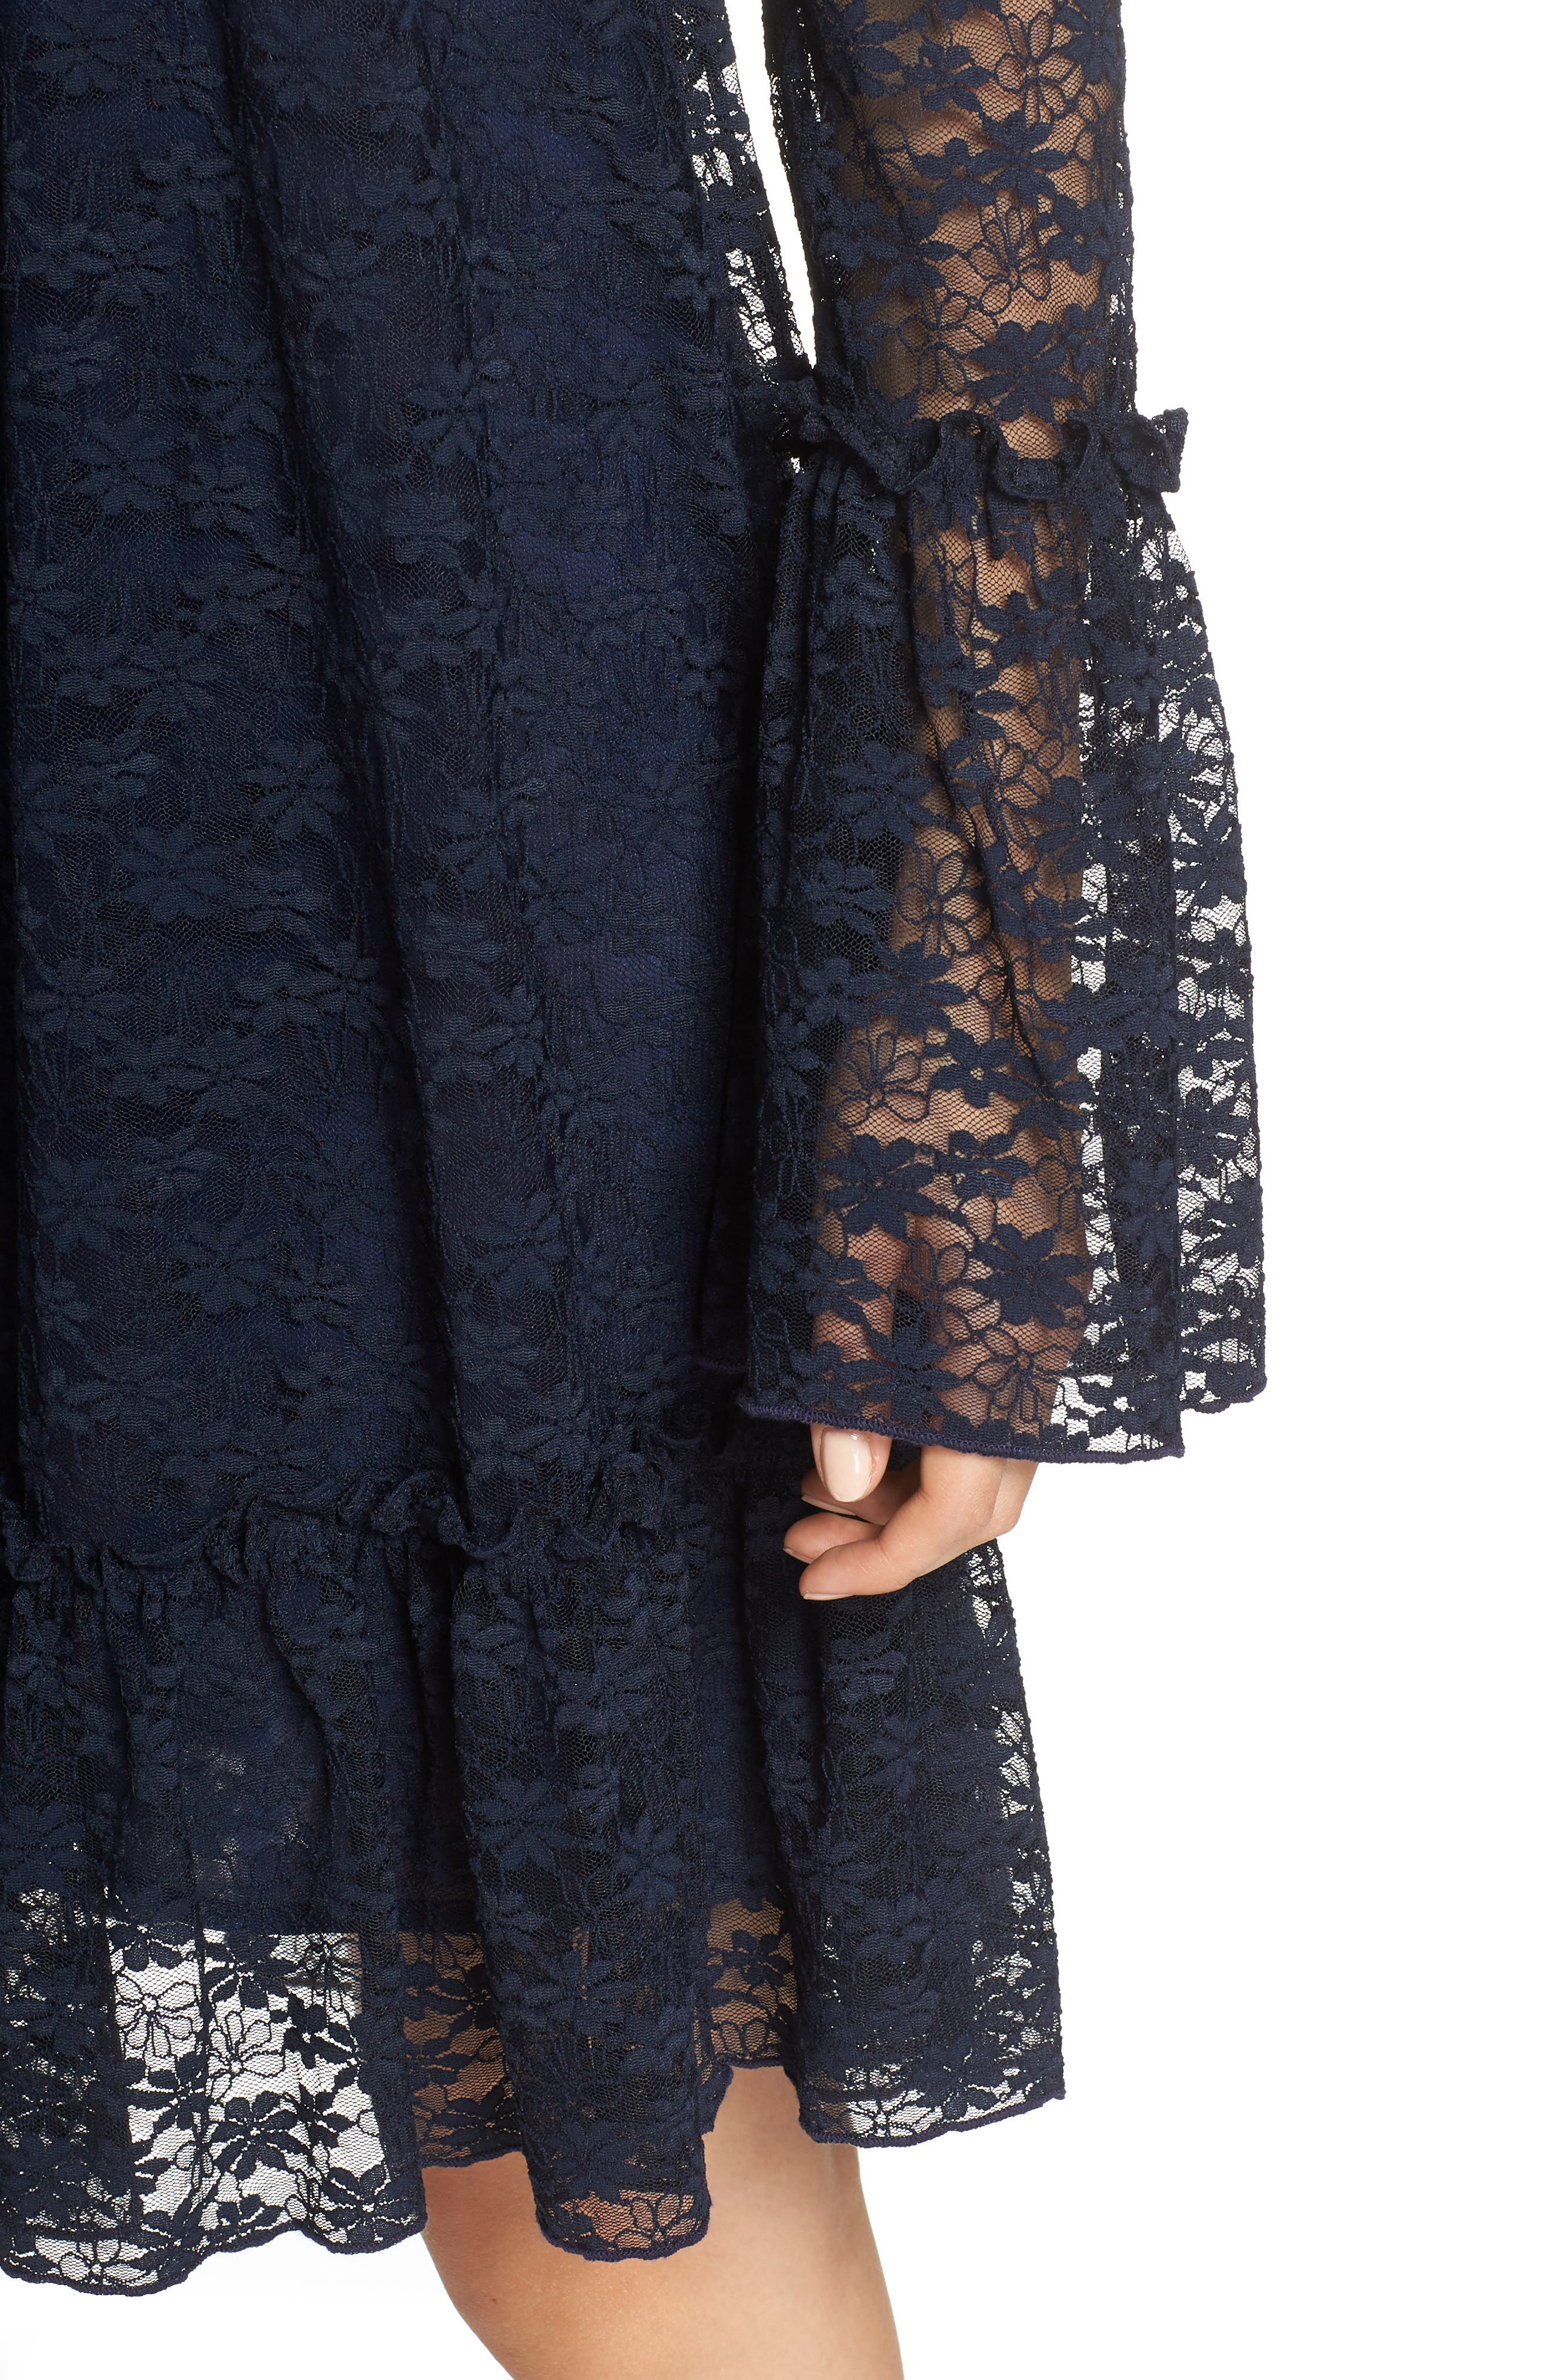 Flare Cuff Lace Dress,                             Alternate thumbnail 4, color,                             456